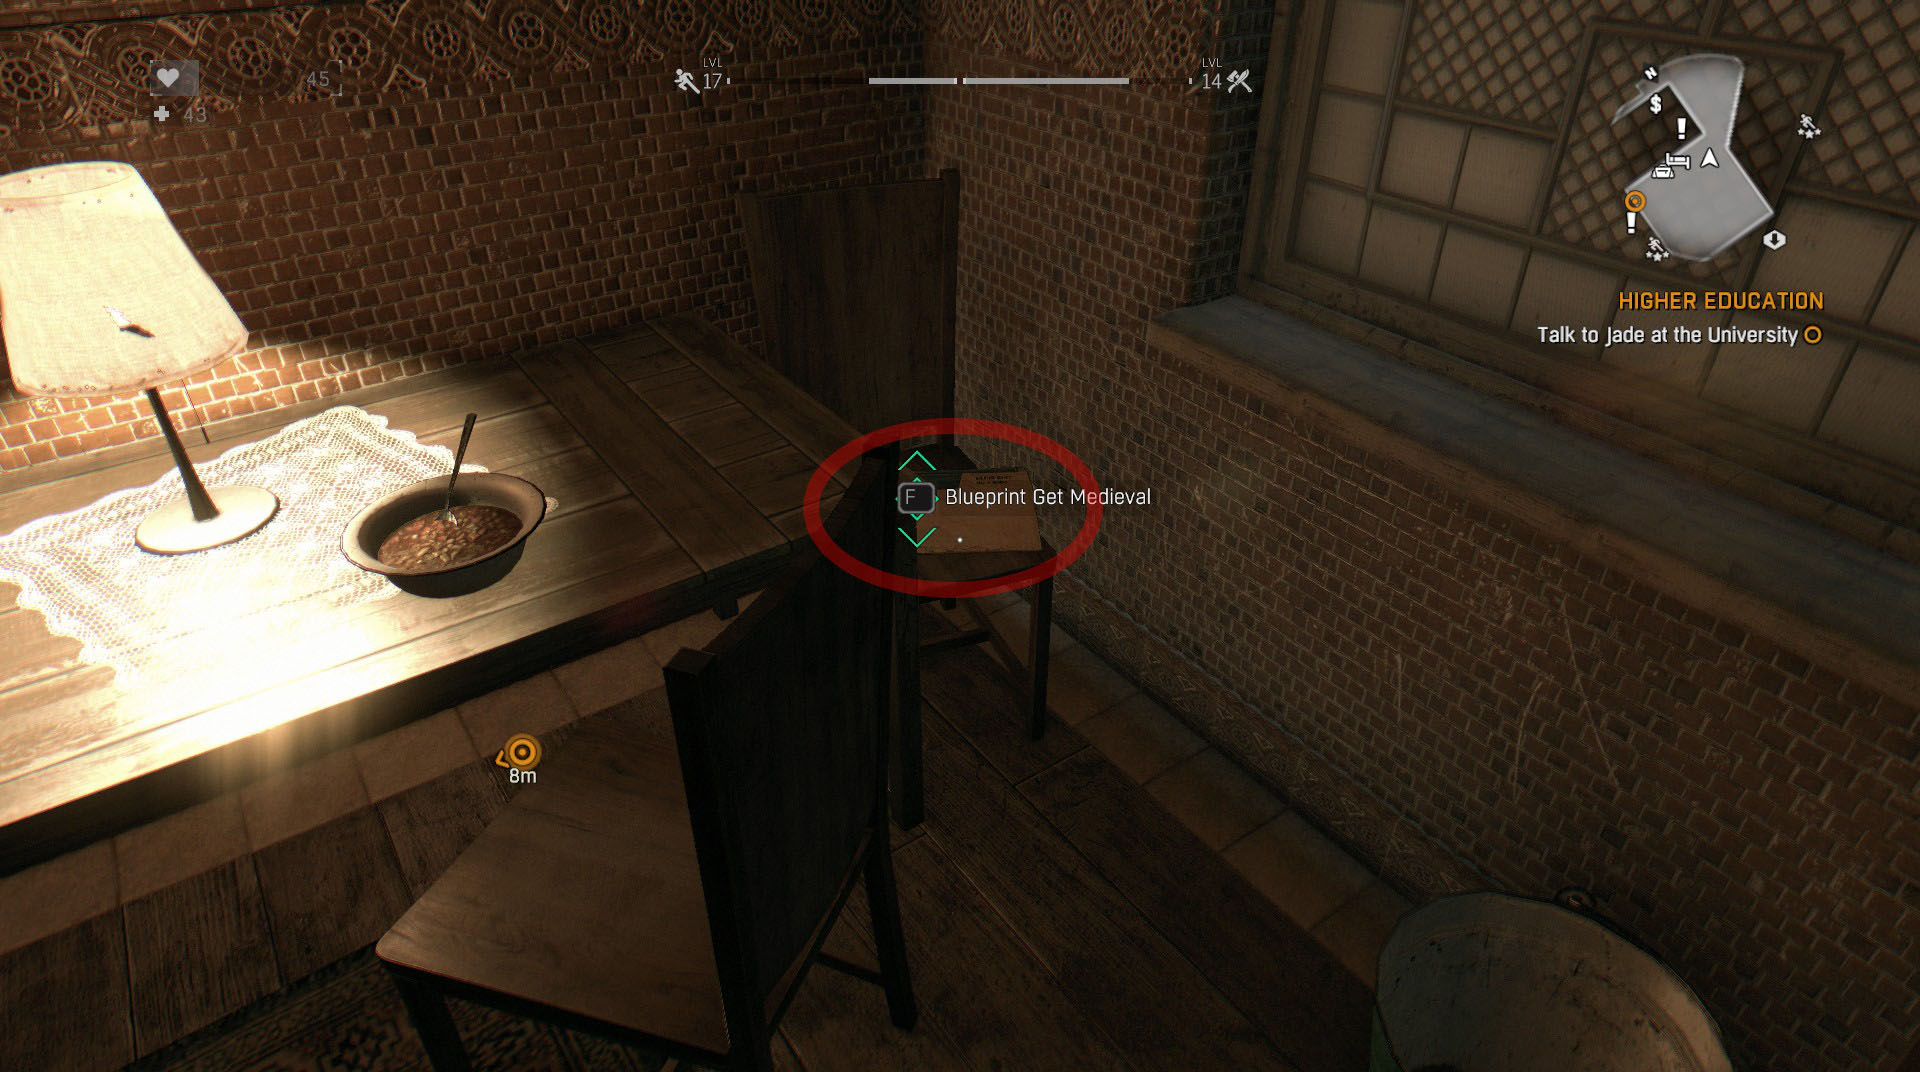 Lighting Basement Washroom Stairs: Dying Light Blueprint Locations In Old Town Guide